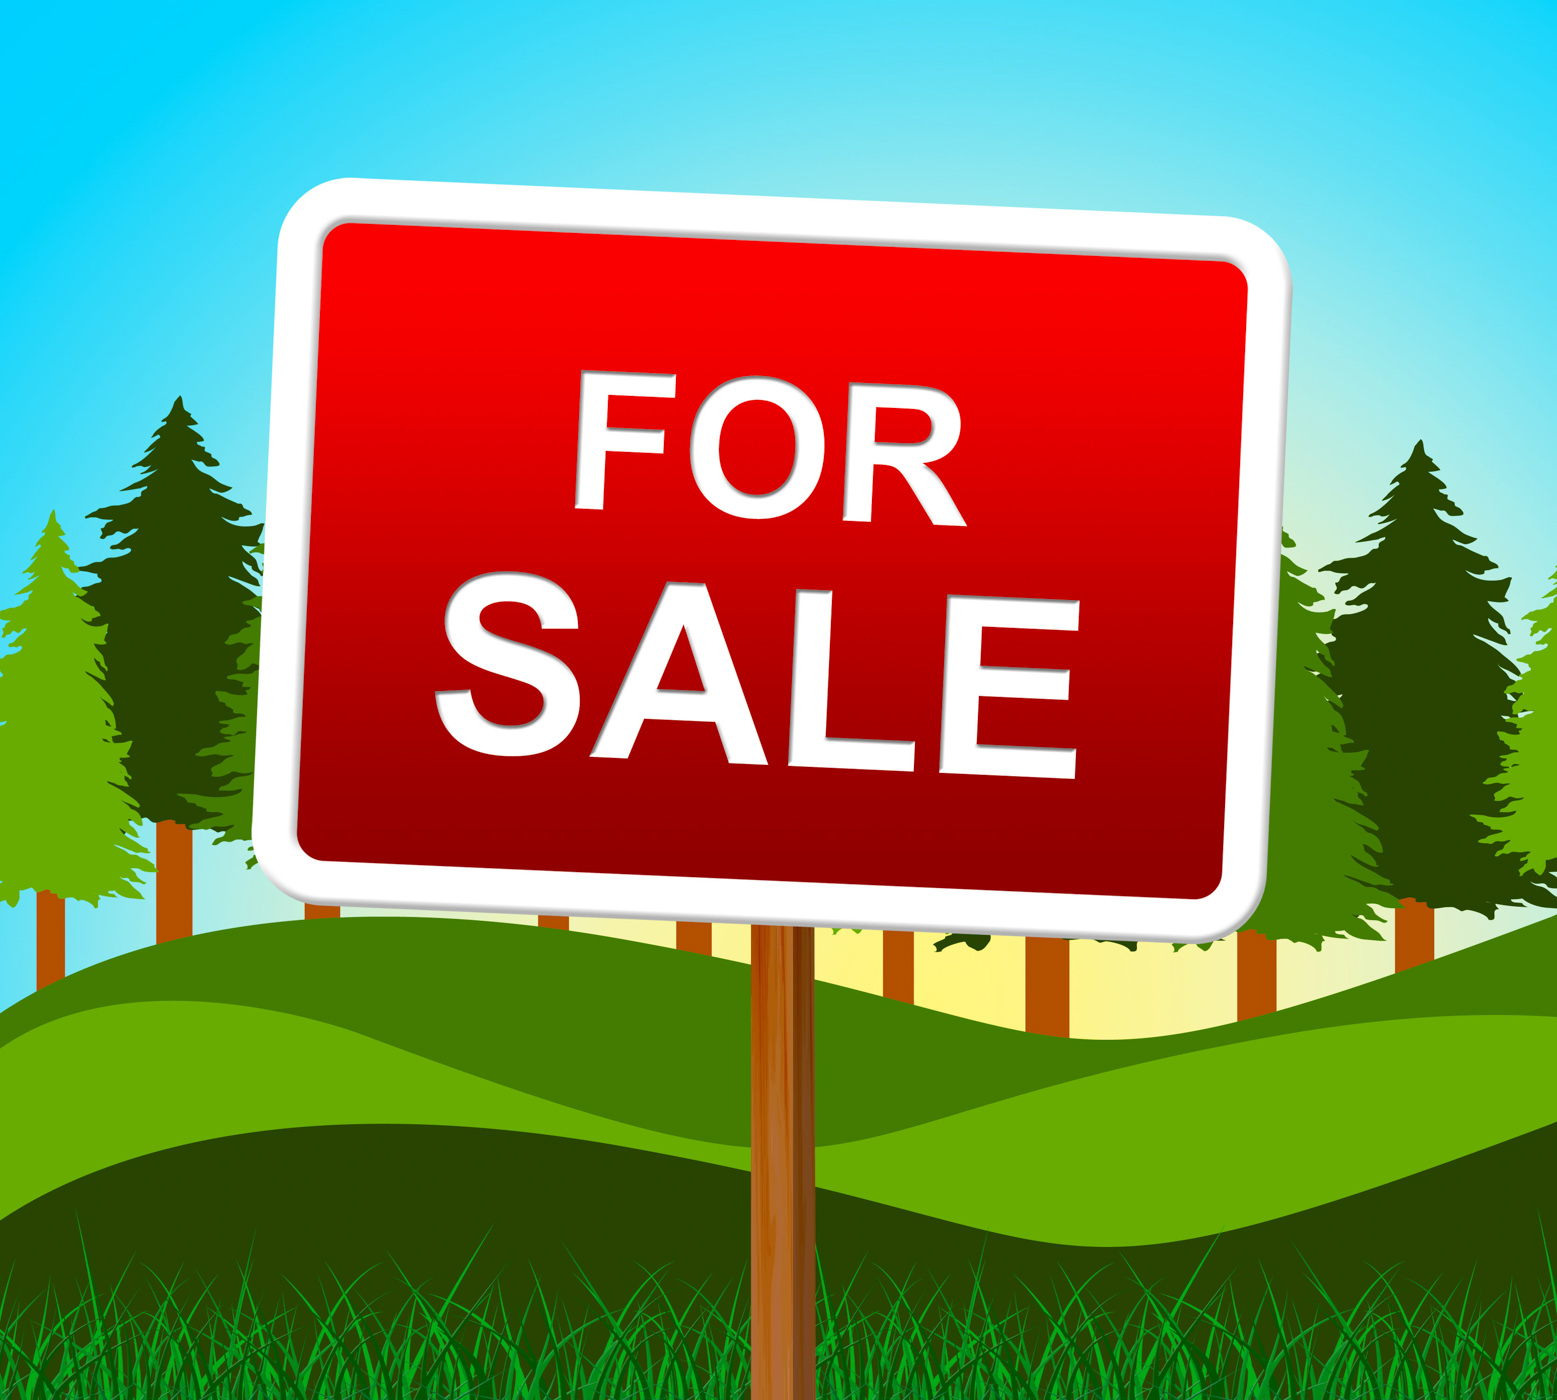 For sale represents real estate and buy photo